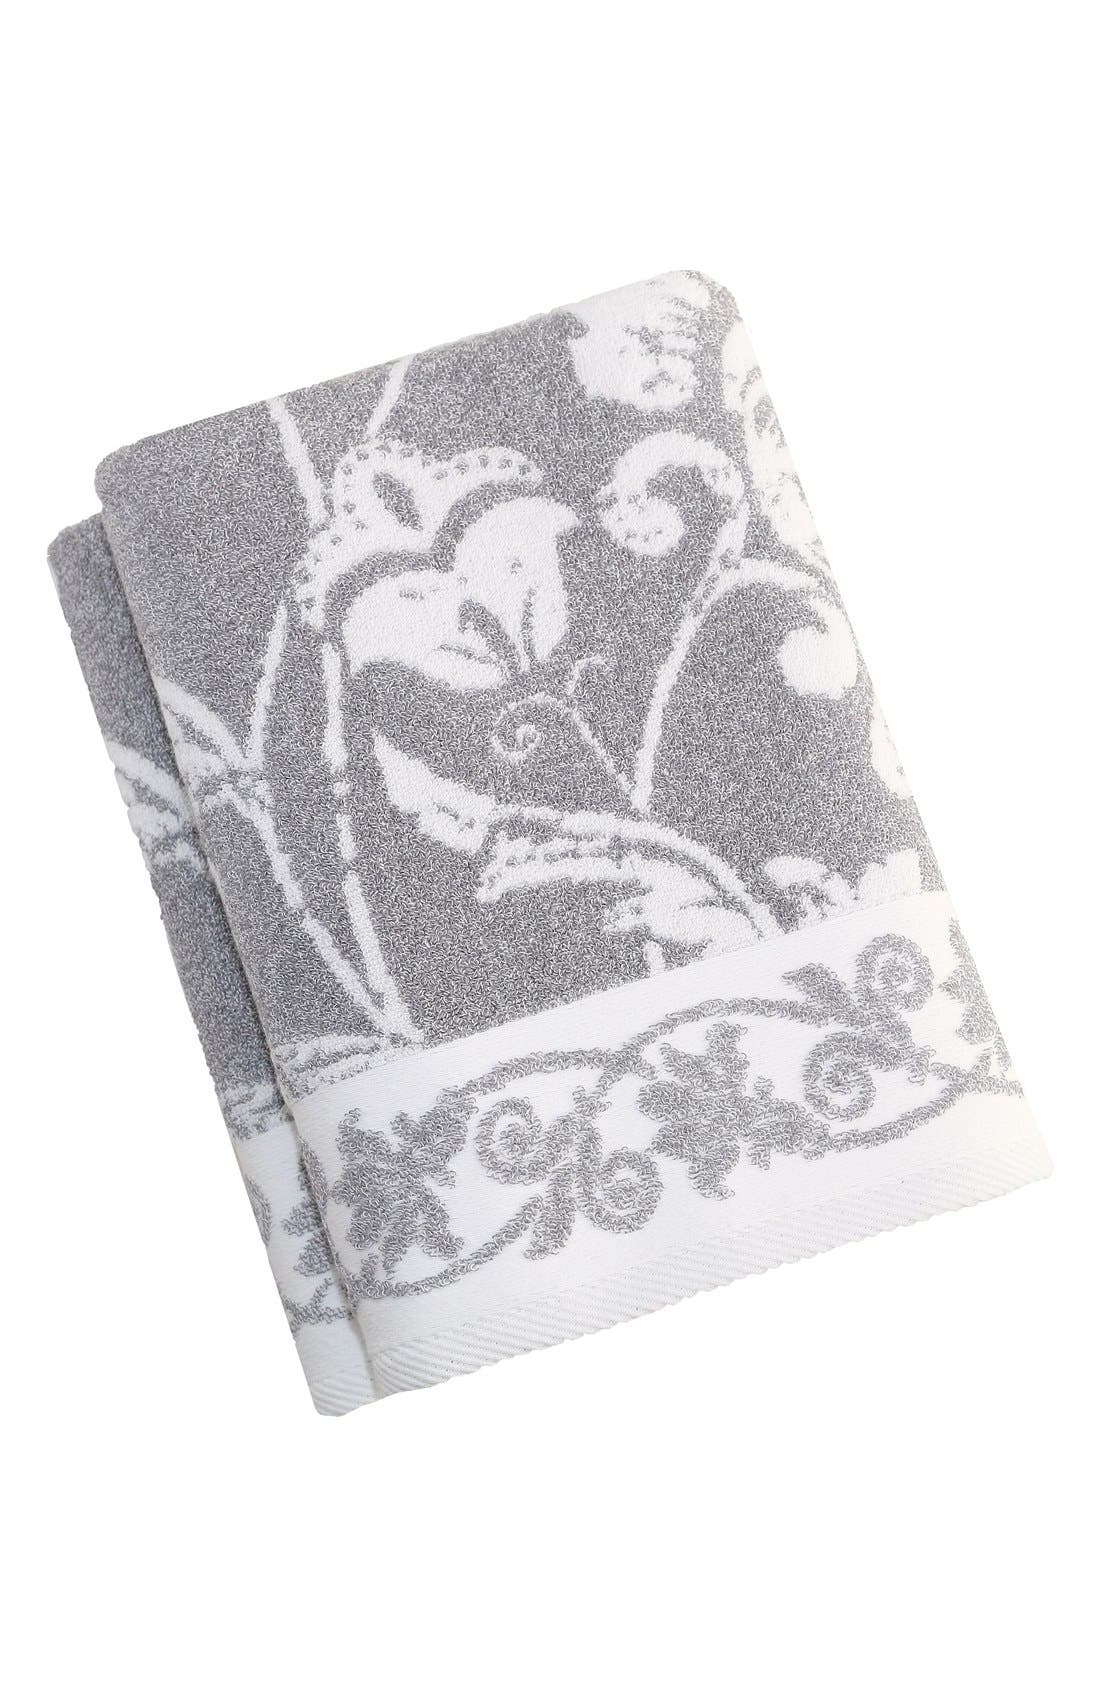 Linum 'Penelope' Turkish Cotton Bath Towels,                             Main thumbnail 1, color,                             Dove Grey